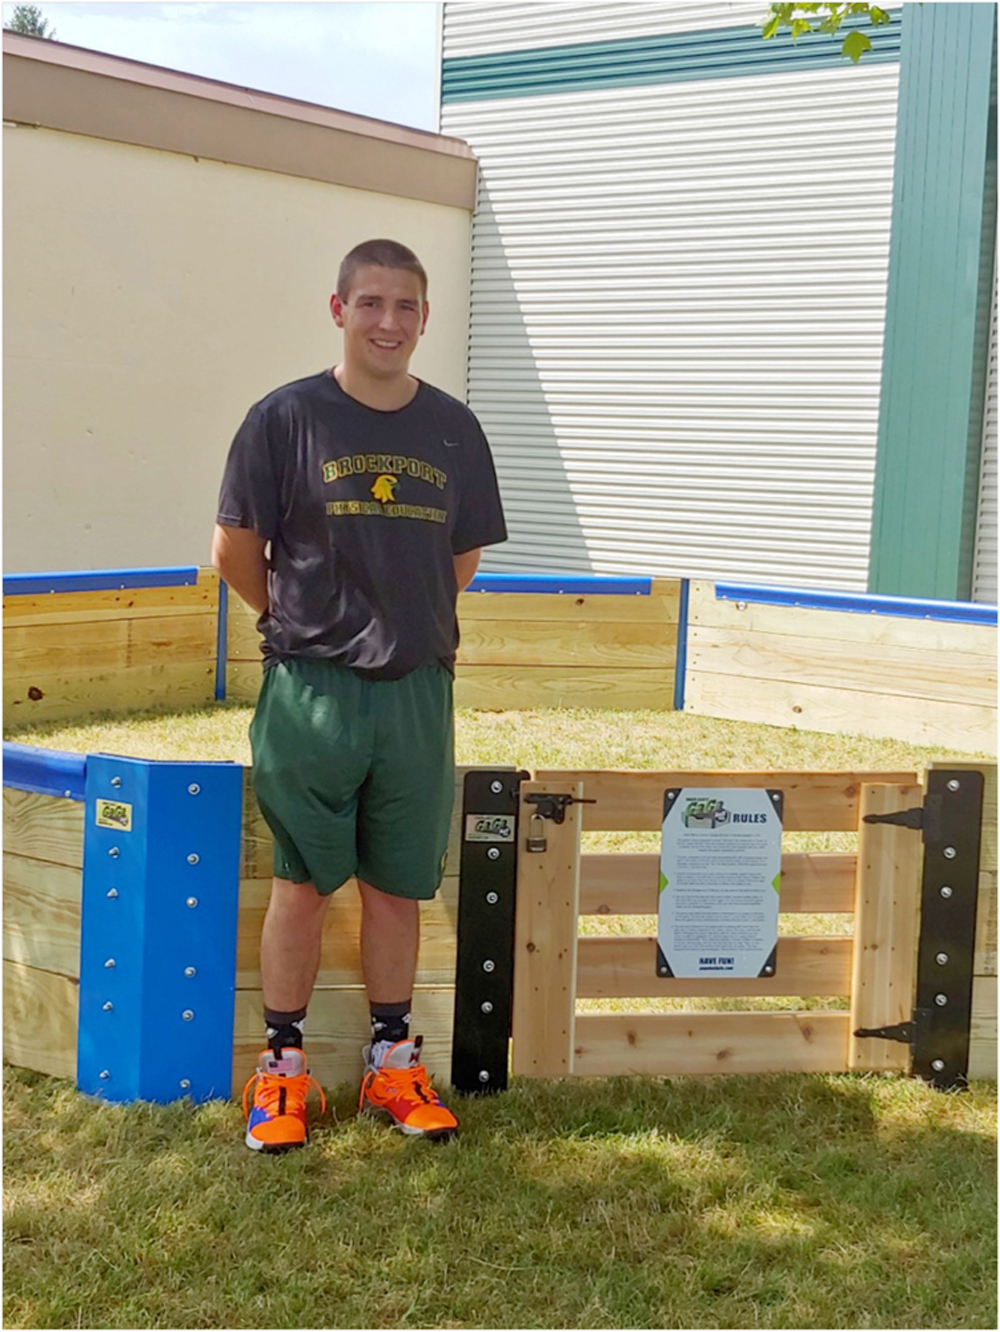 Coby Albone constructed the gaga pit as his thesis project.